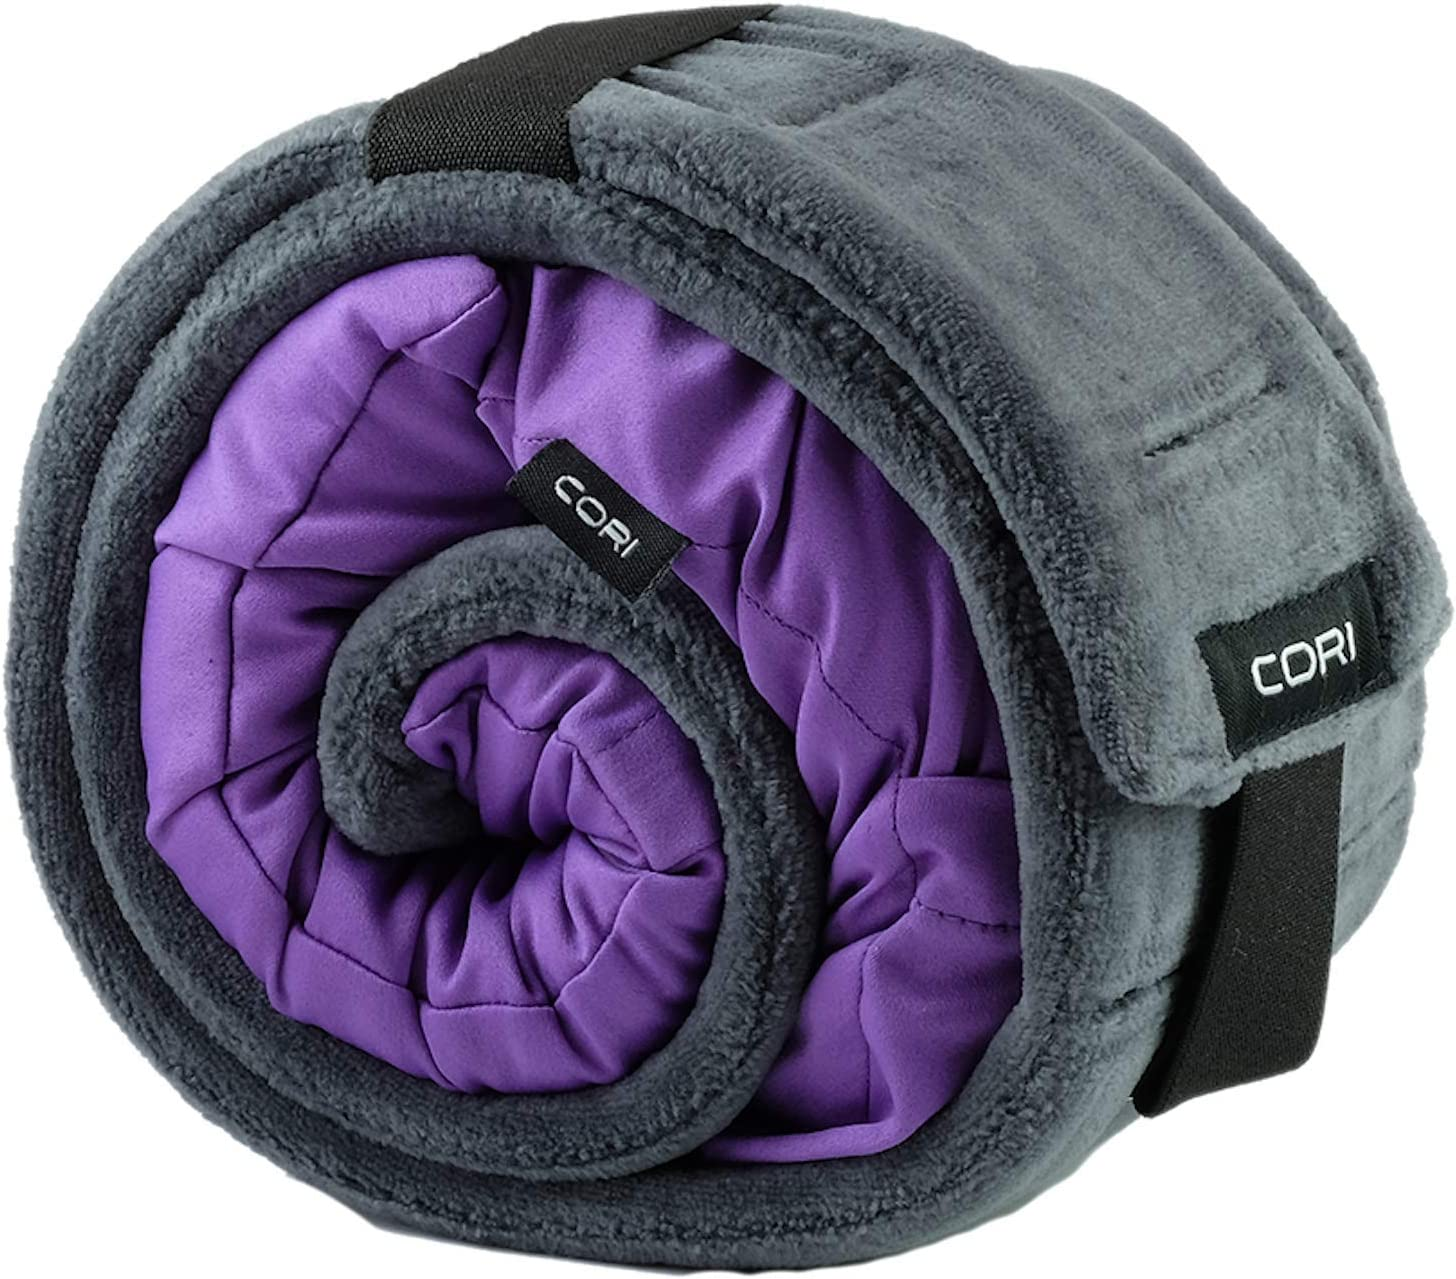 OMELODY U shaped pillow, Travel Pillow